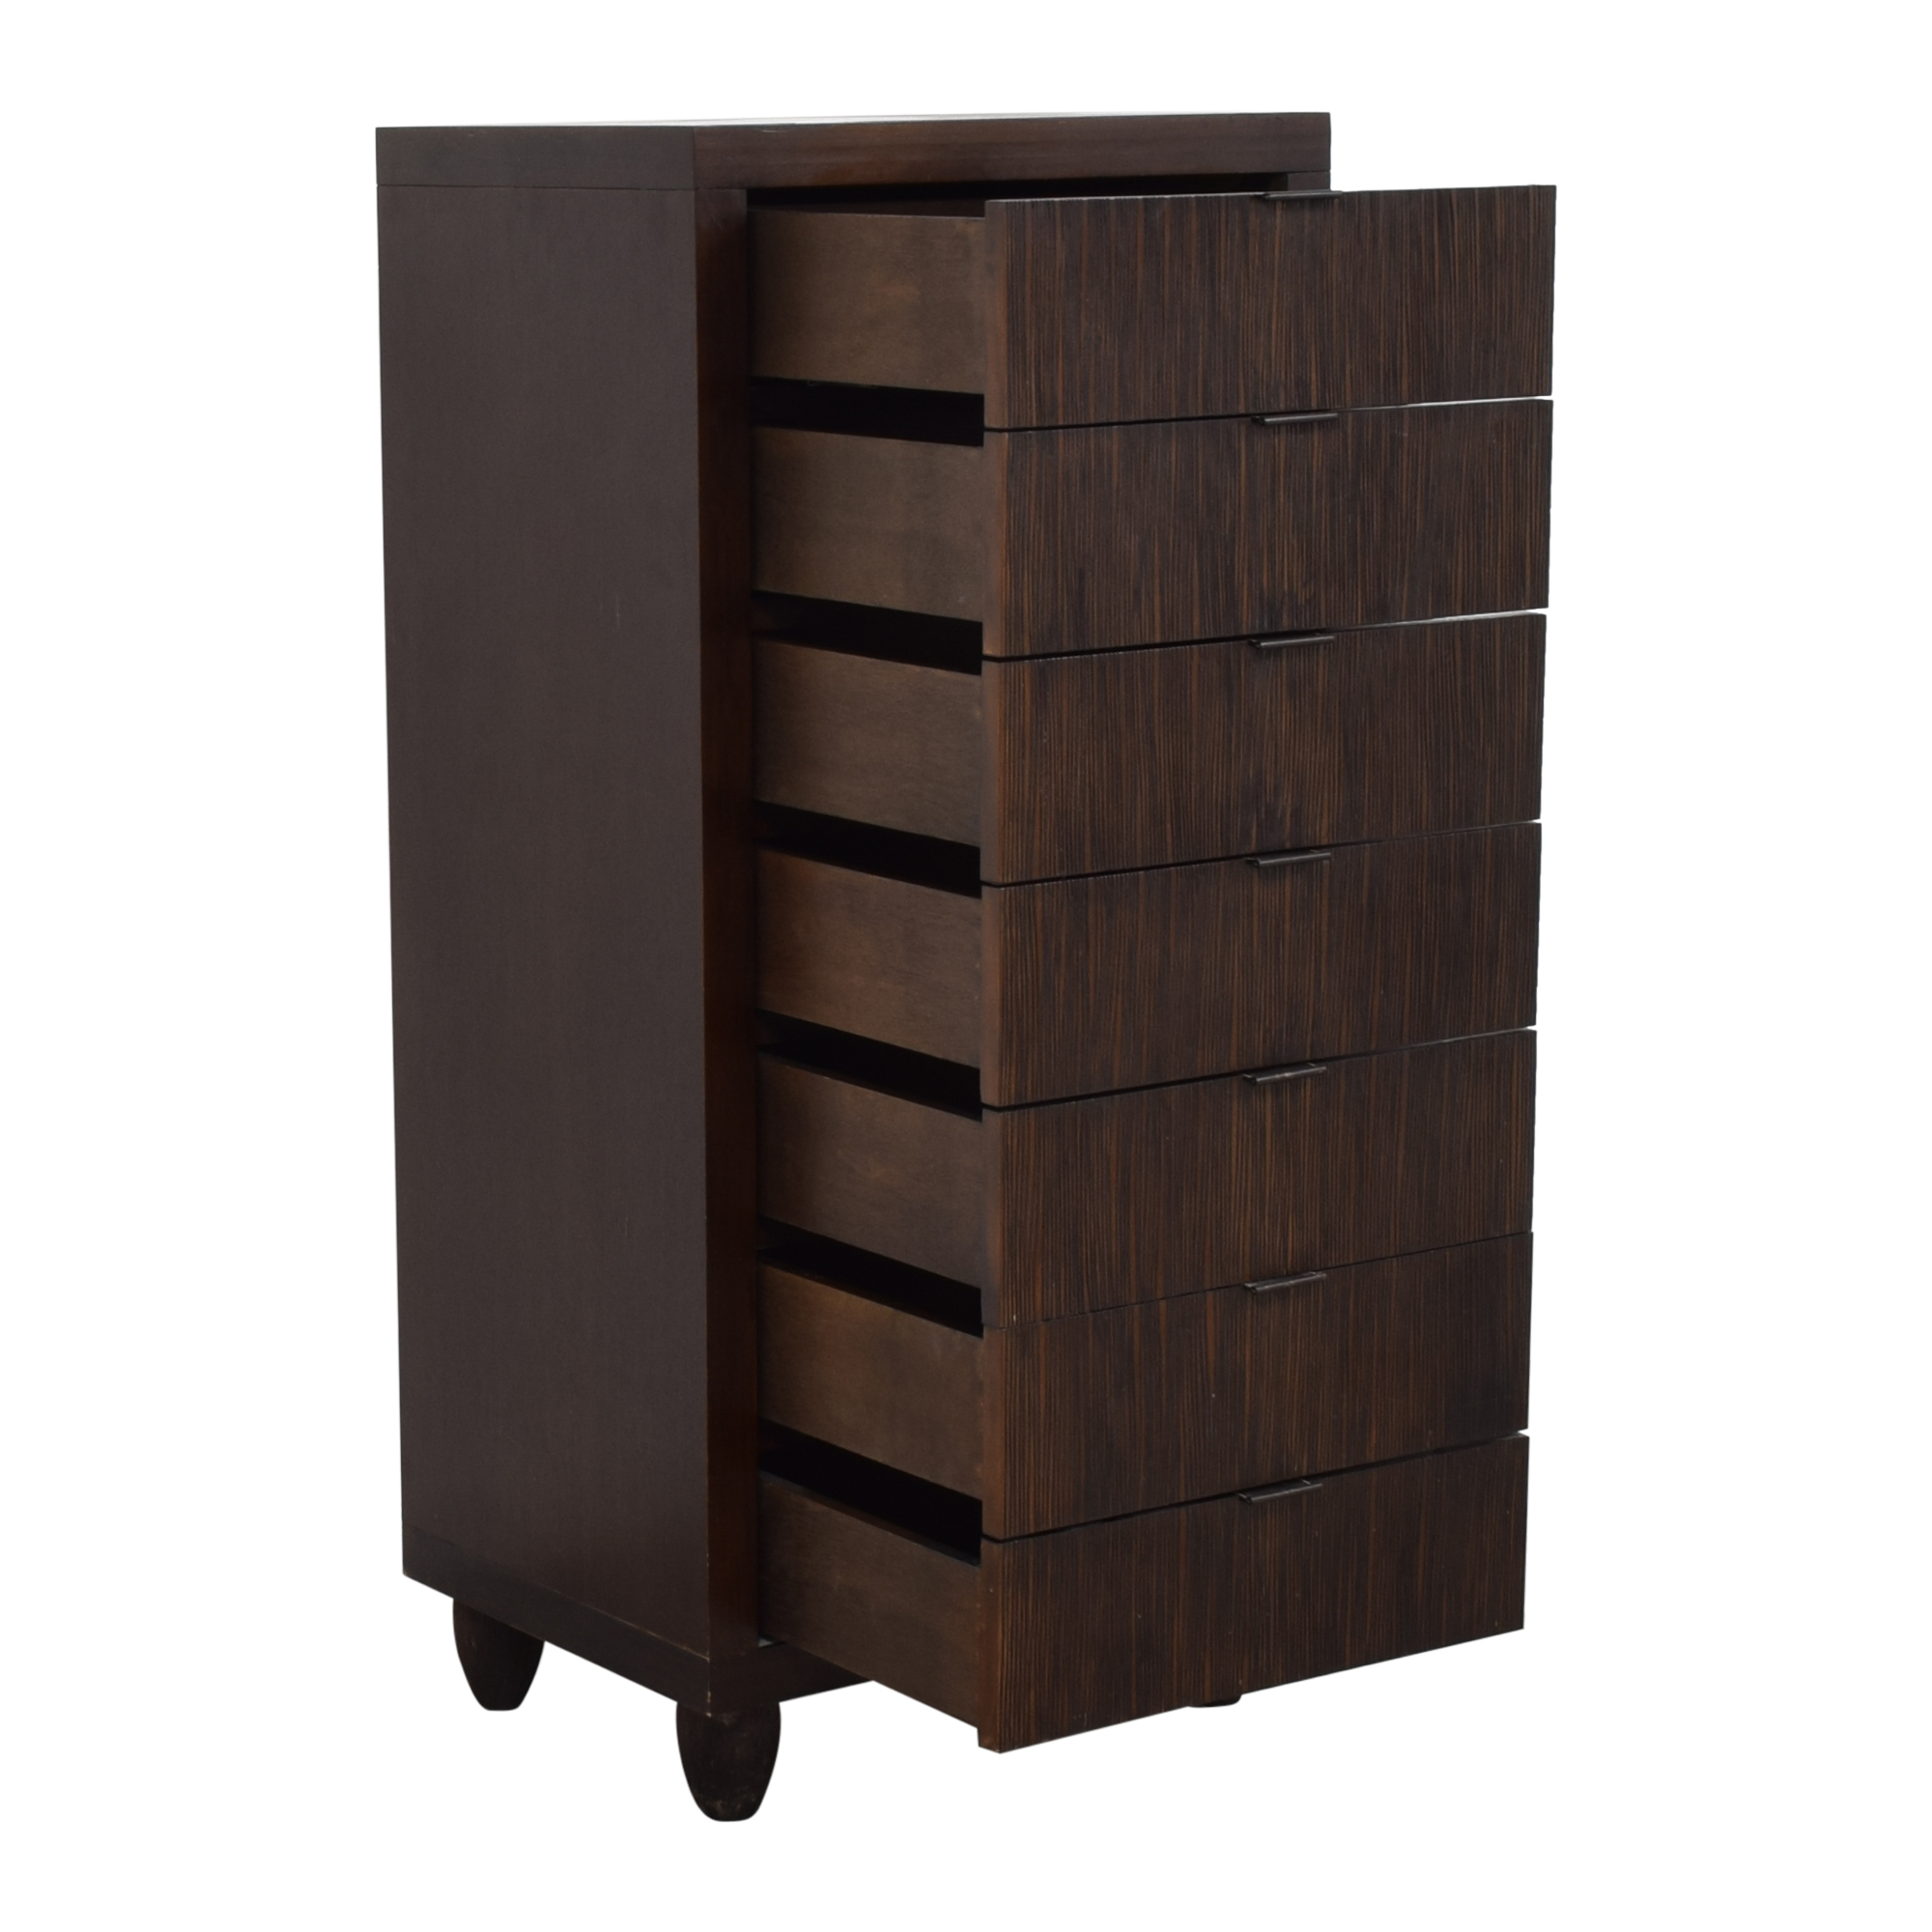 shop Crate & Barrel Tall Chest of Drawers Crate & Barrel